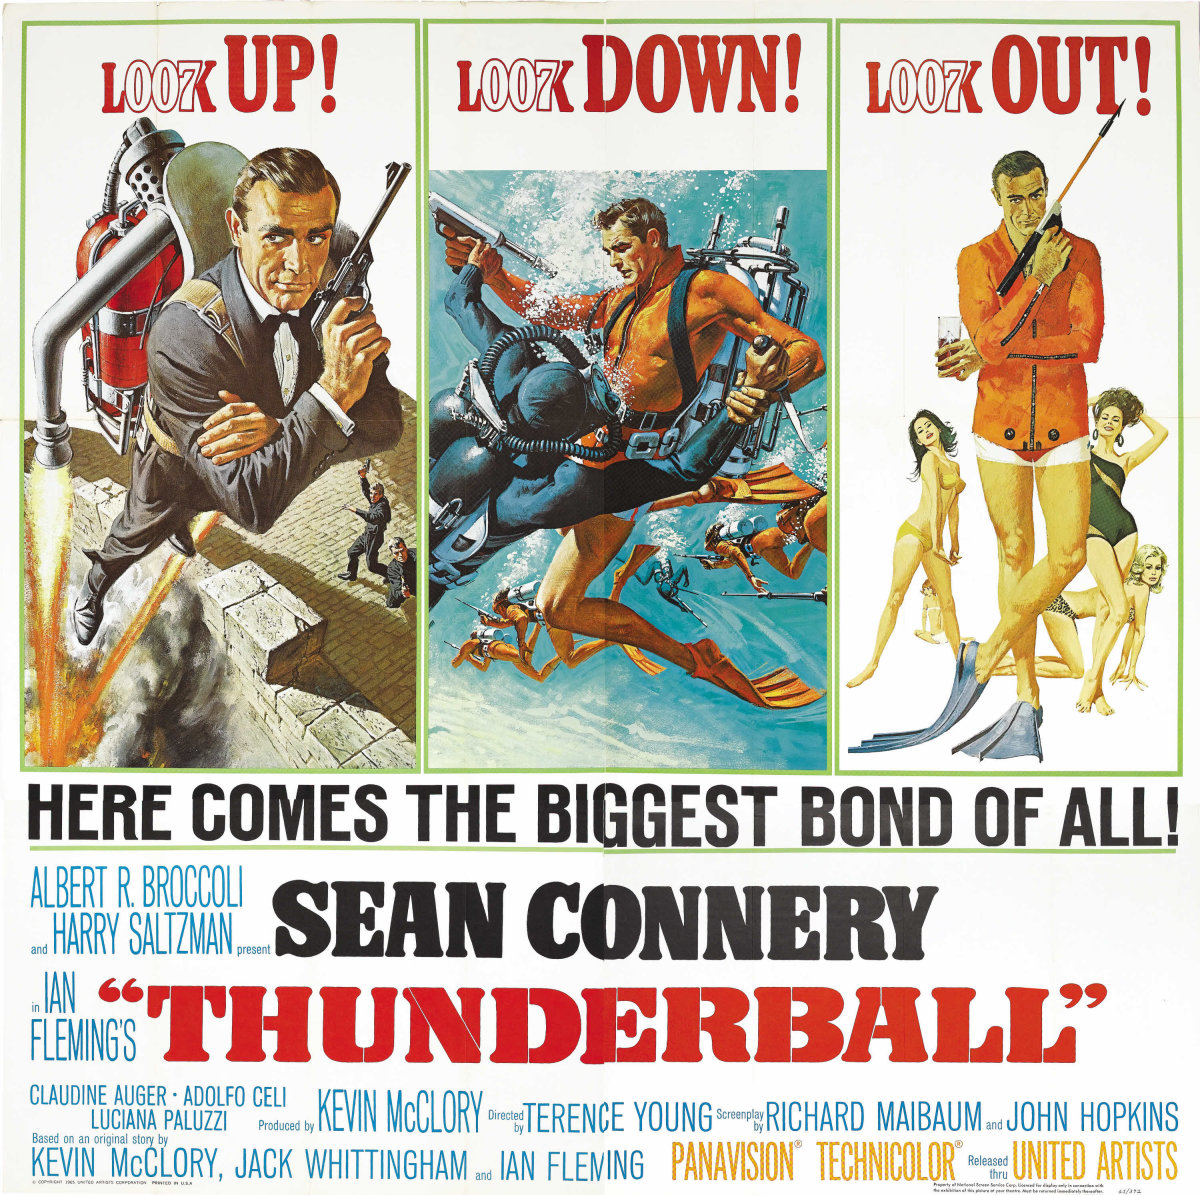 Thunderball (1965) finds Bondbattling the sinister espionage organization SPECTRE, which has hijacked a pair of nuclear bombs and is threatening to use them unless a ransom of 100,000,000 pounds is paid. The mastermind behind this scheme is Emilio Largo, who has a nasty habit of feeding his adversaries to his pet sharks. The poster is one of the best ever made for the Bond franchise. It sold for $2,000.